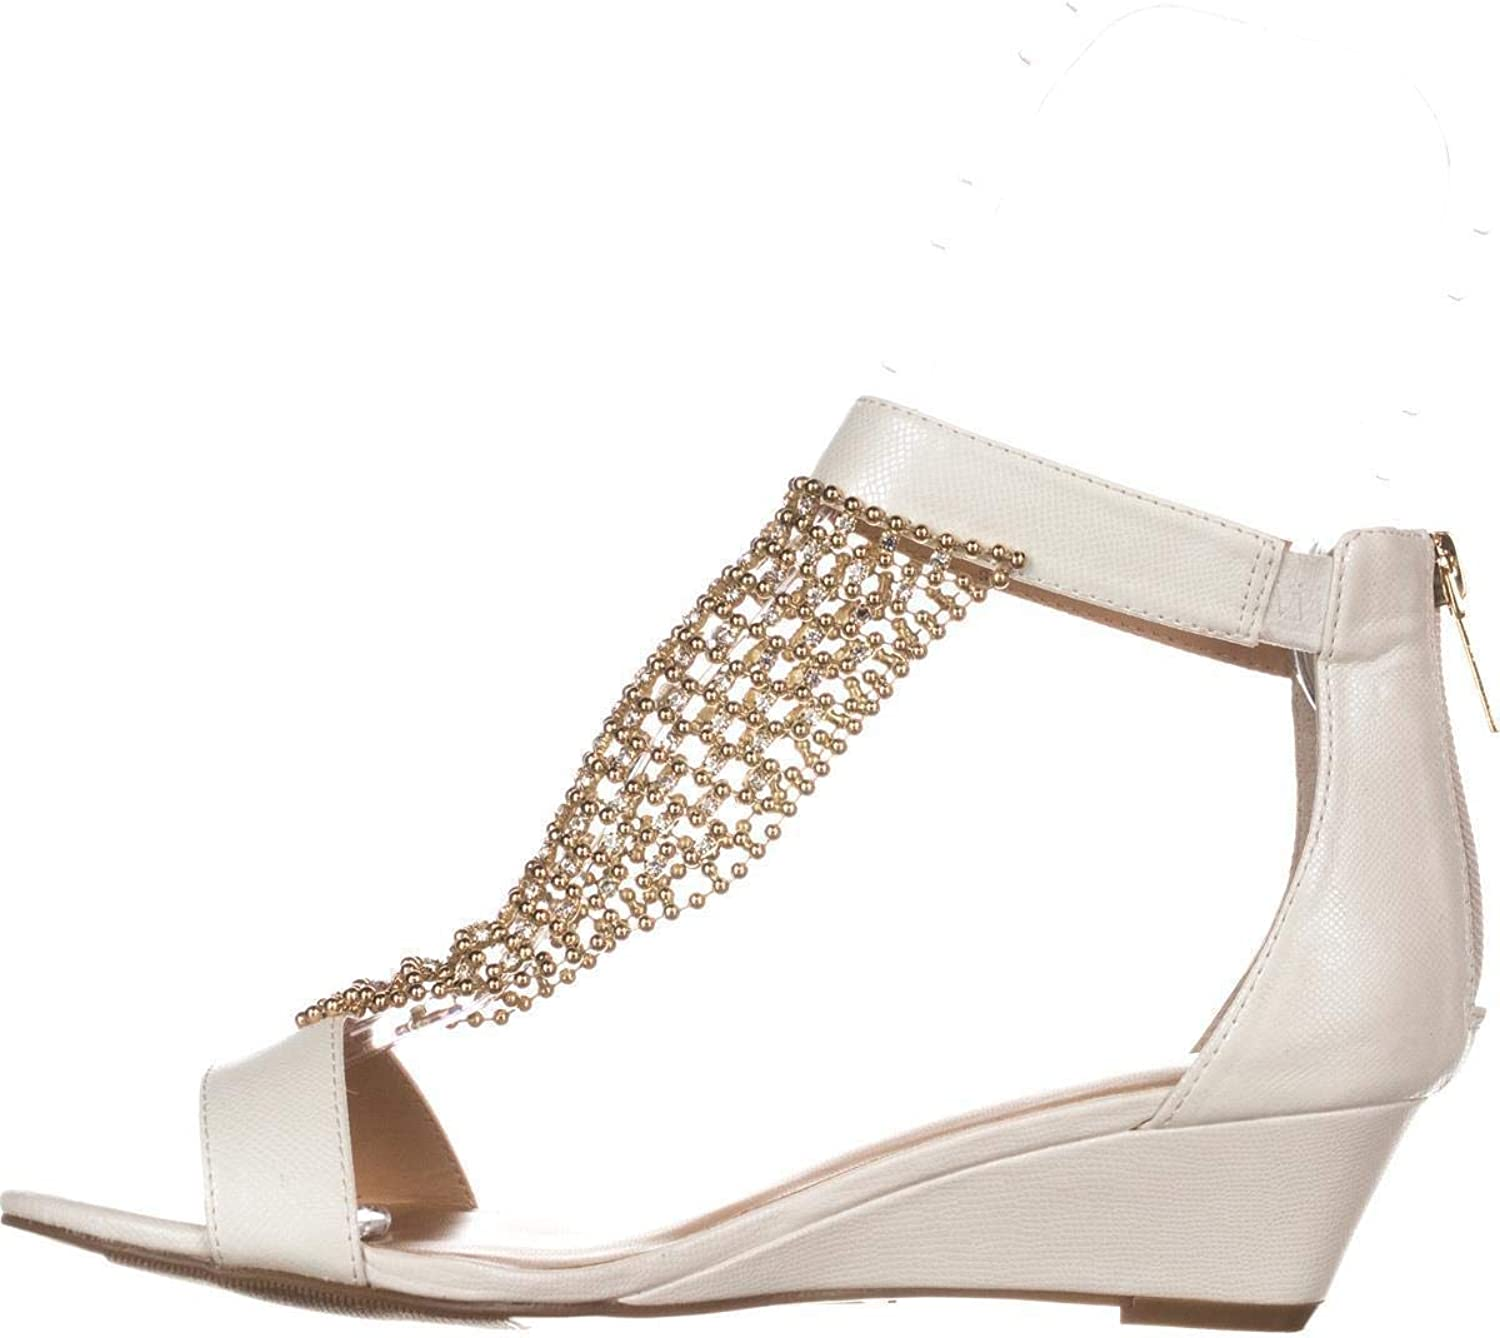 Thalia Sodi Womens Tibby Open Toe Casual Ankle Strap Sandals, White, Size 9.0